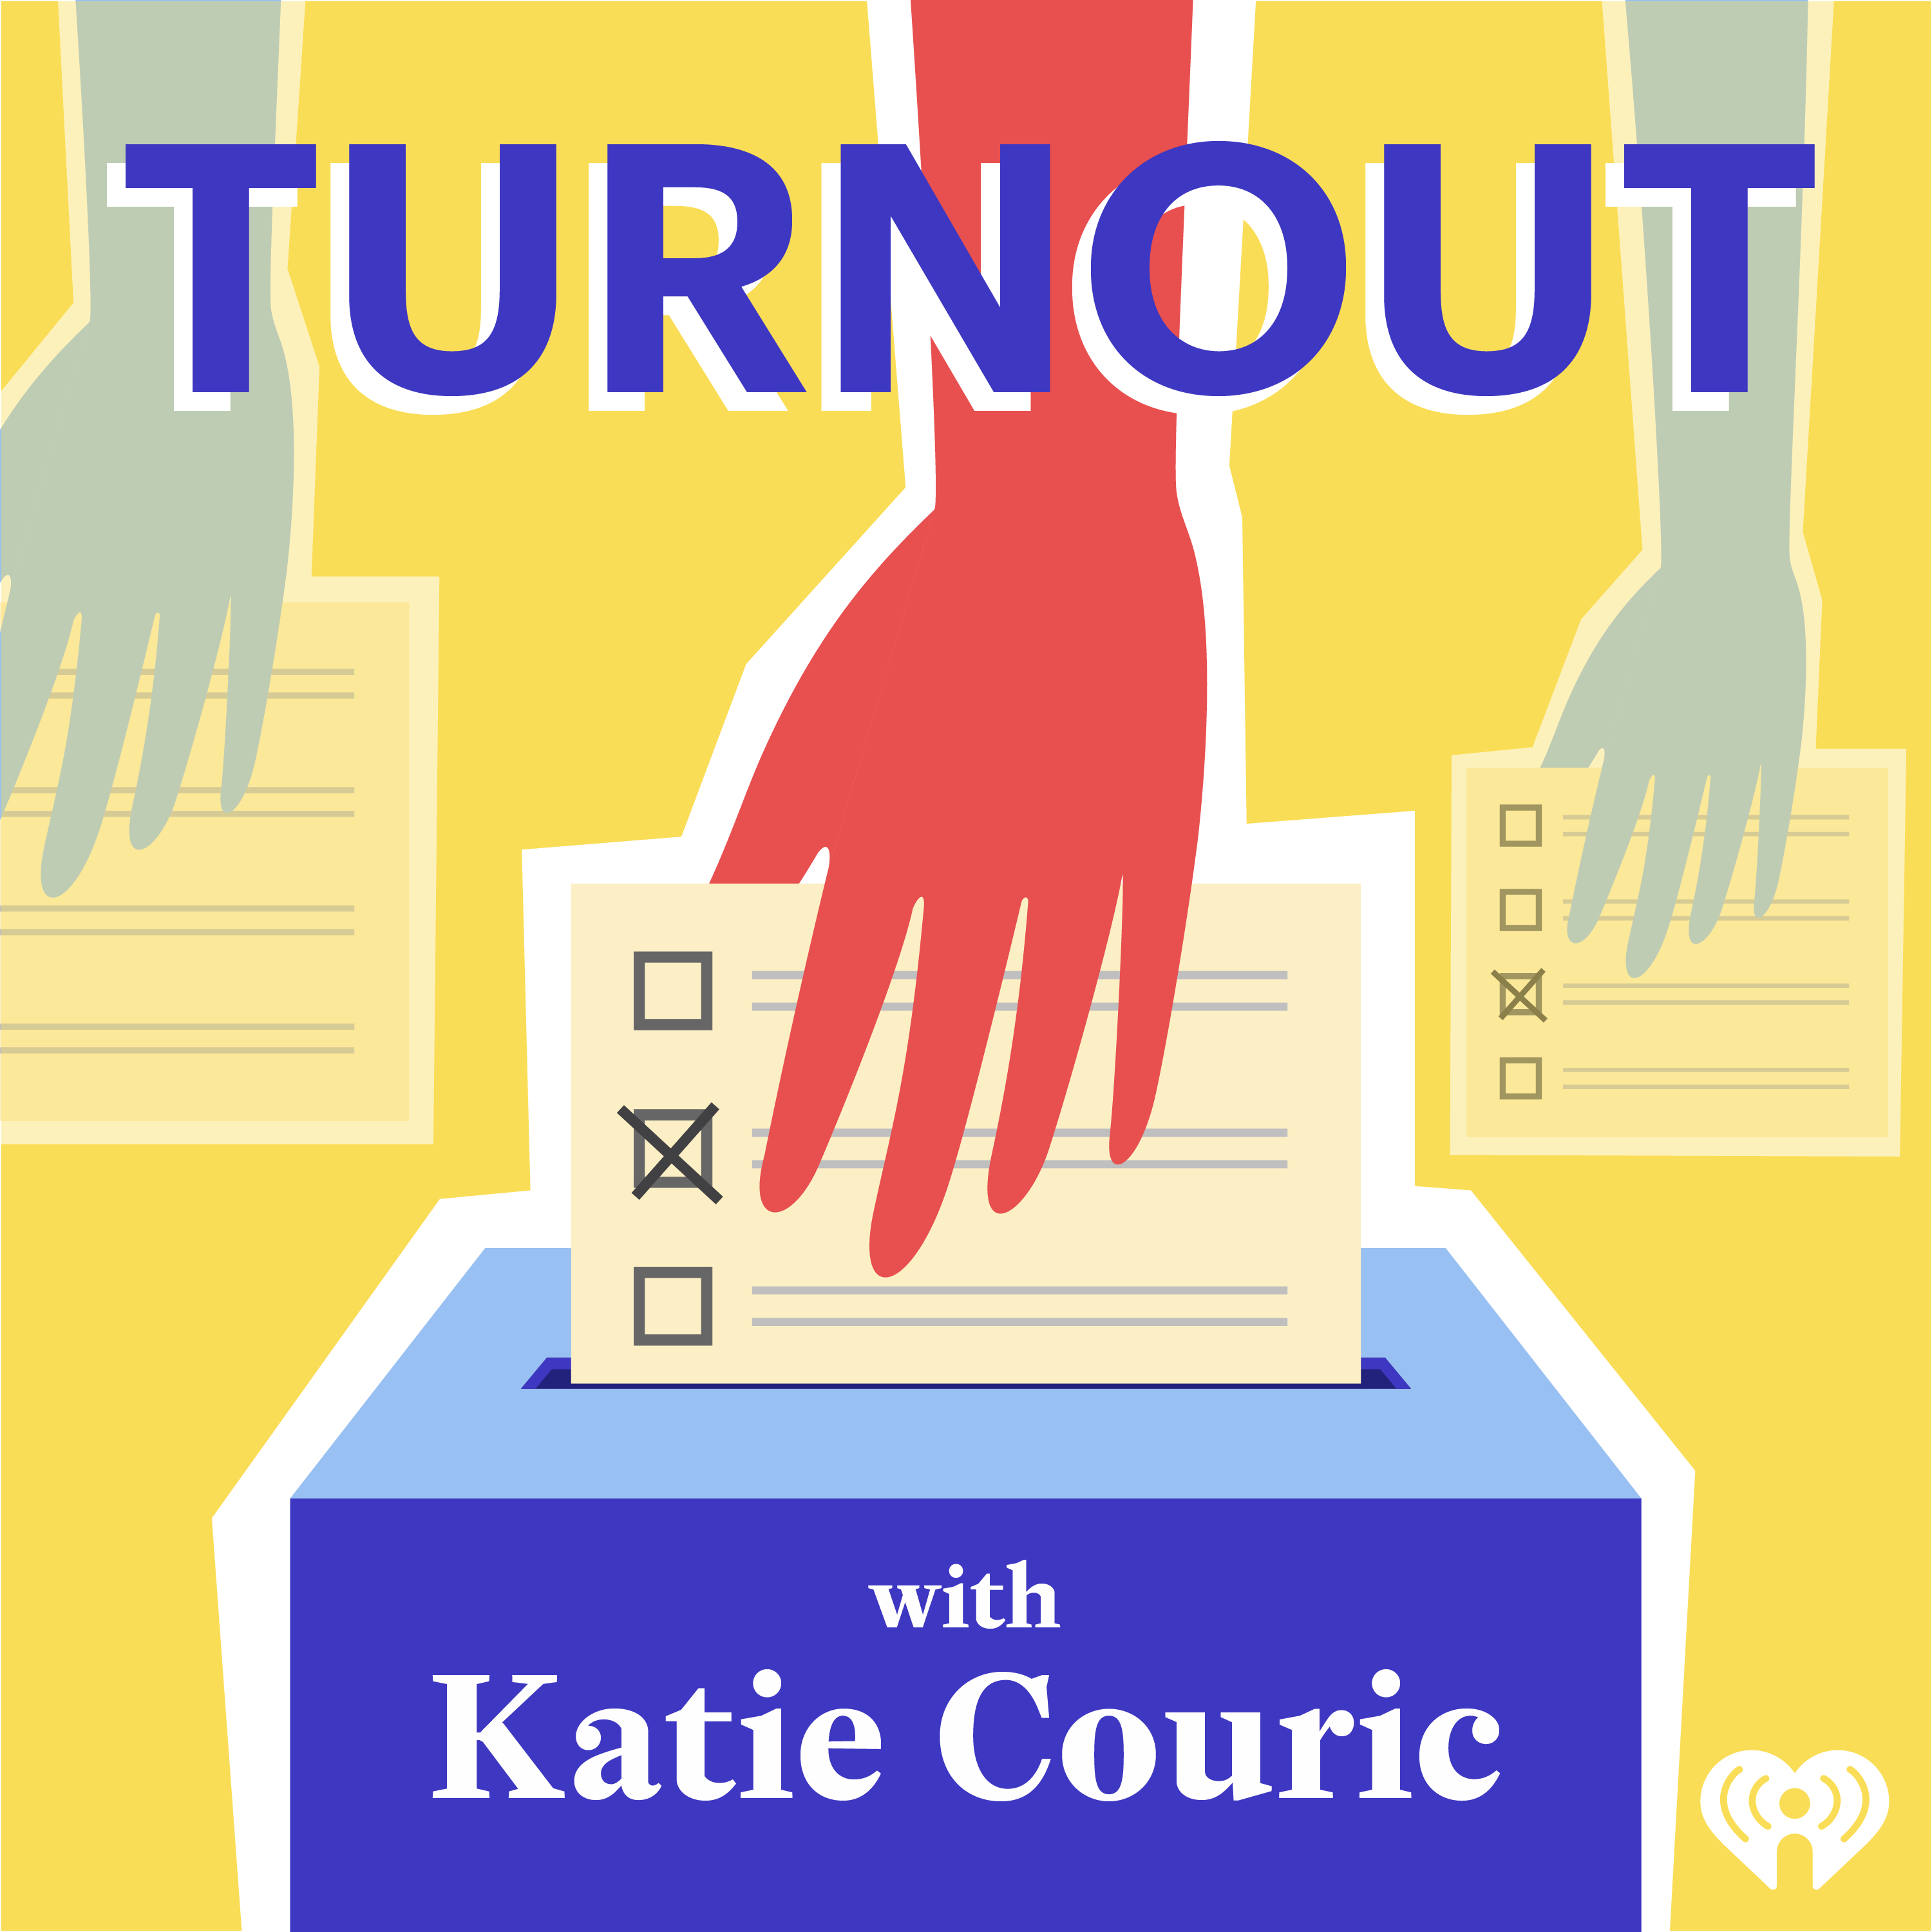 Introducing: Turnout with Katie Couric